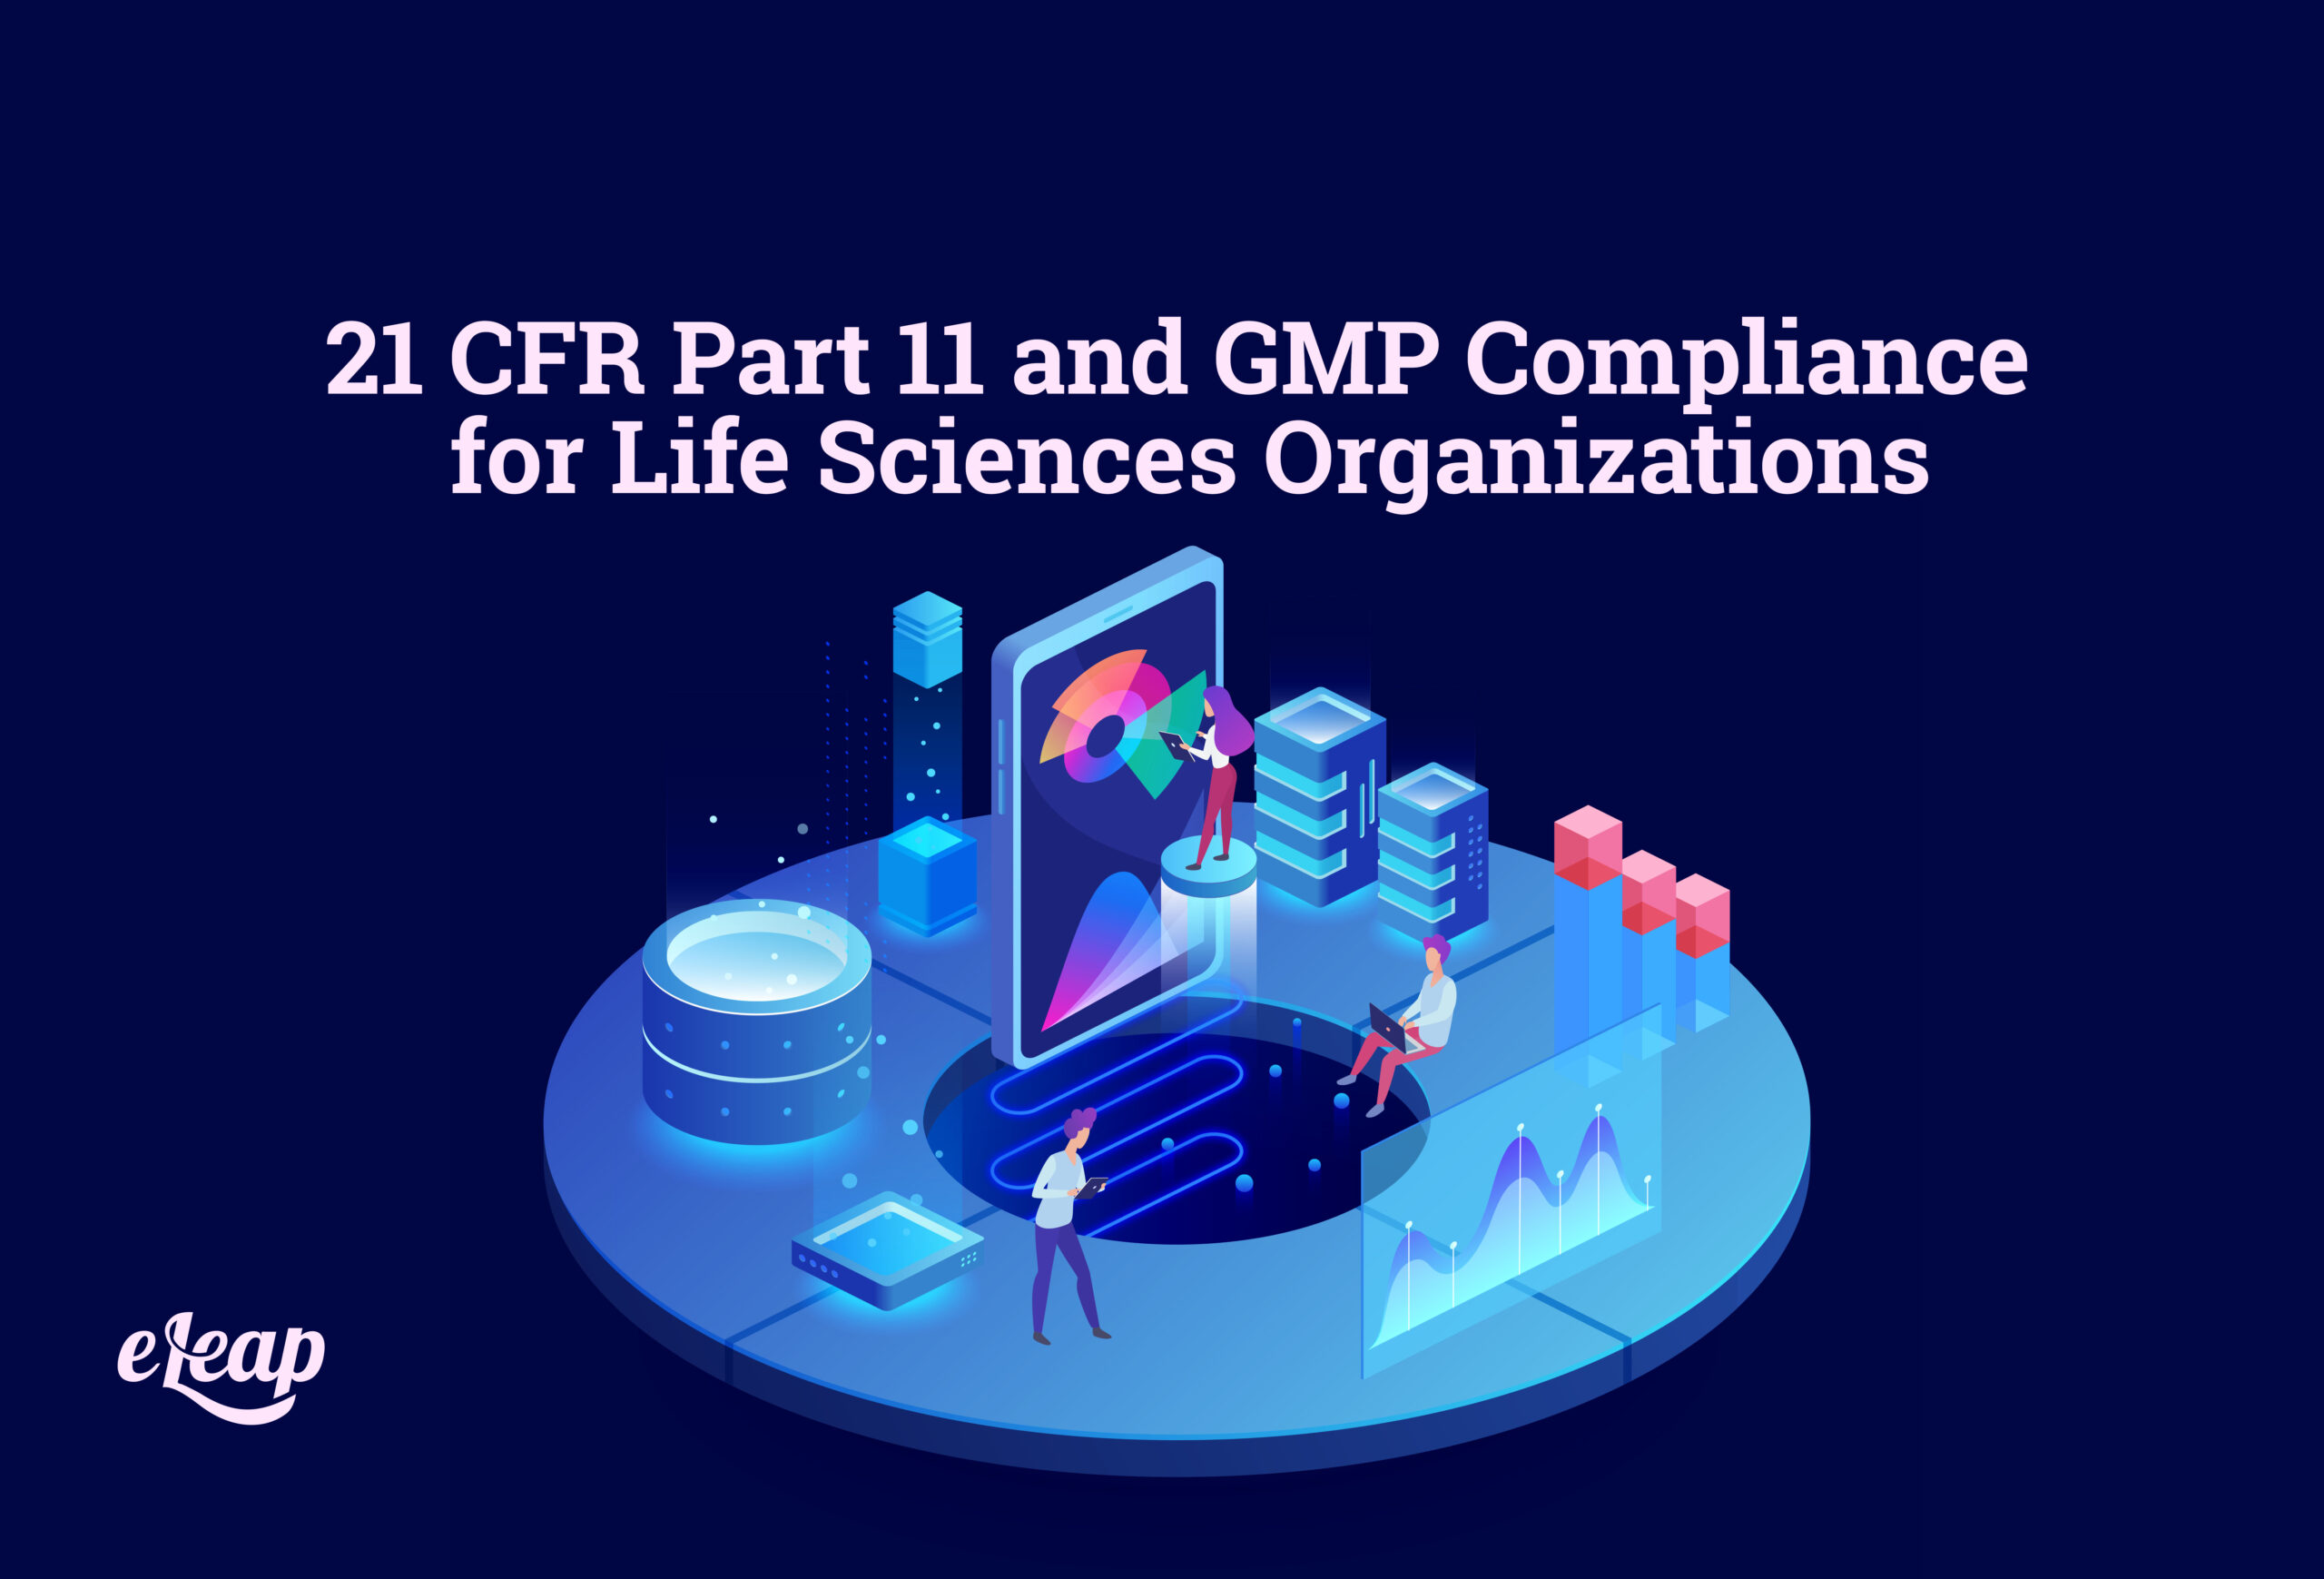 21 CFR Part 11 and GMP Compliance for Life Sciences Organizations